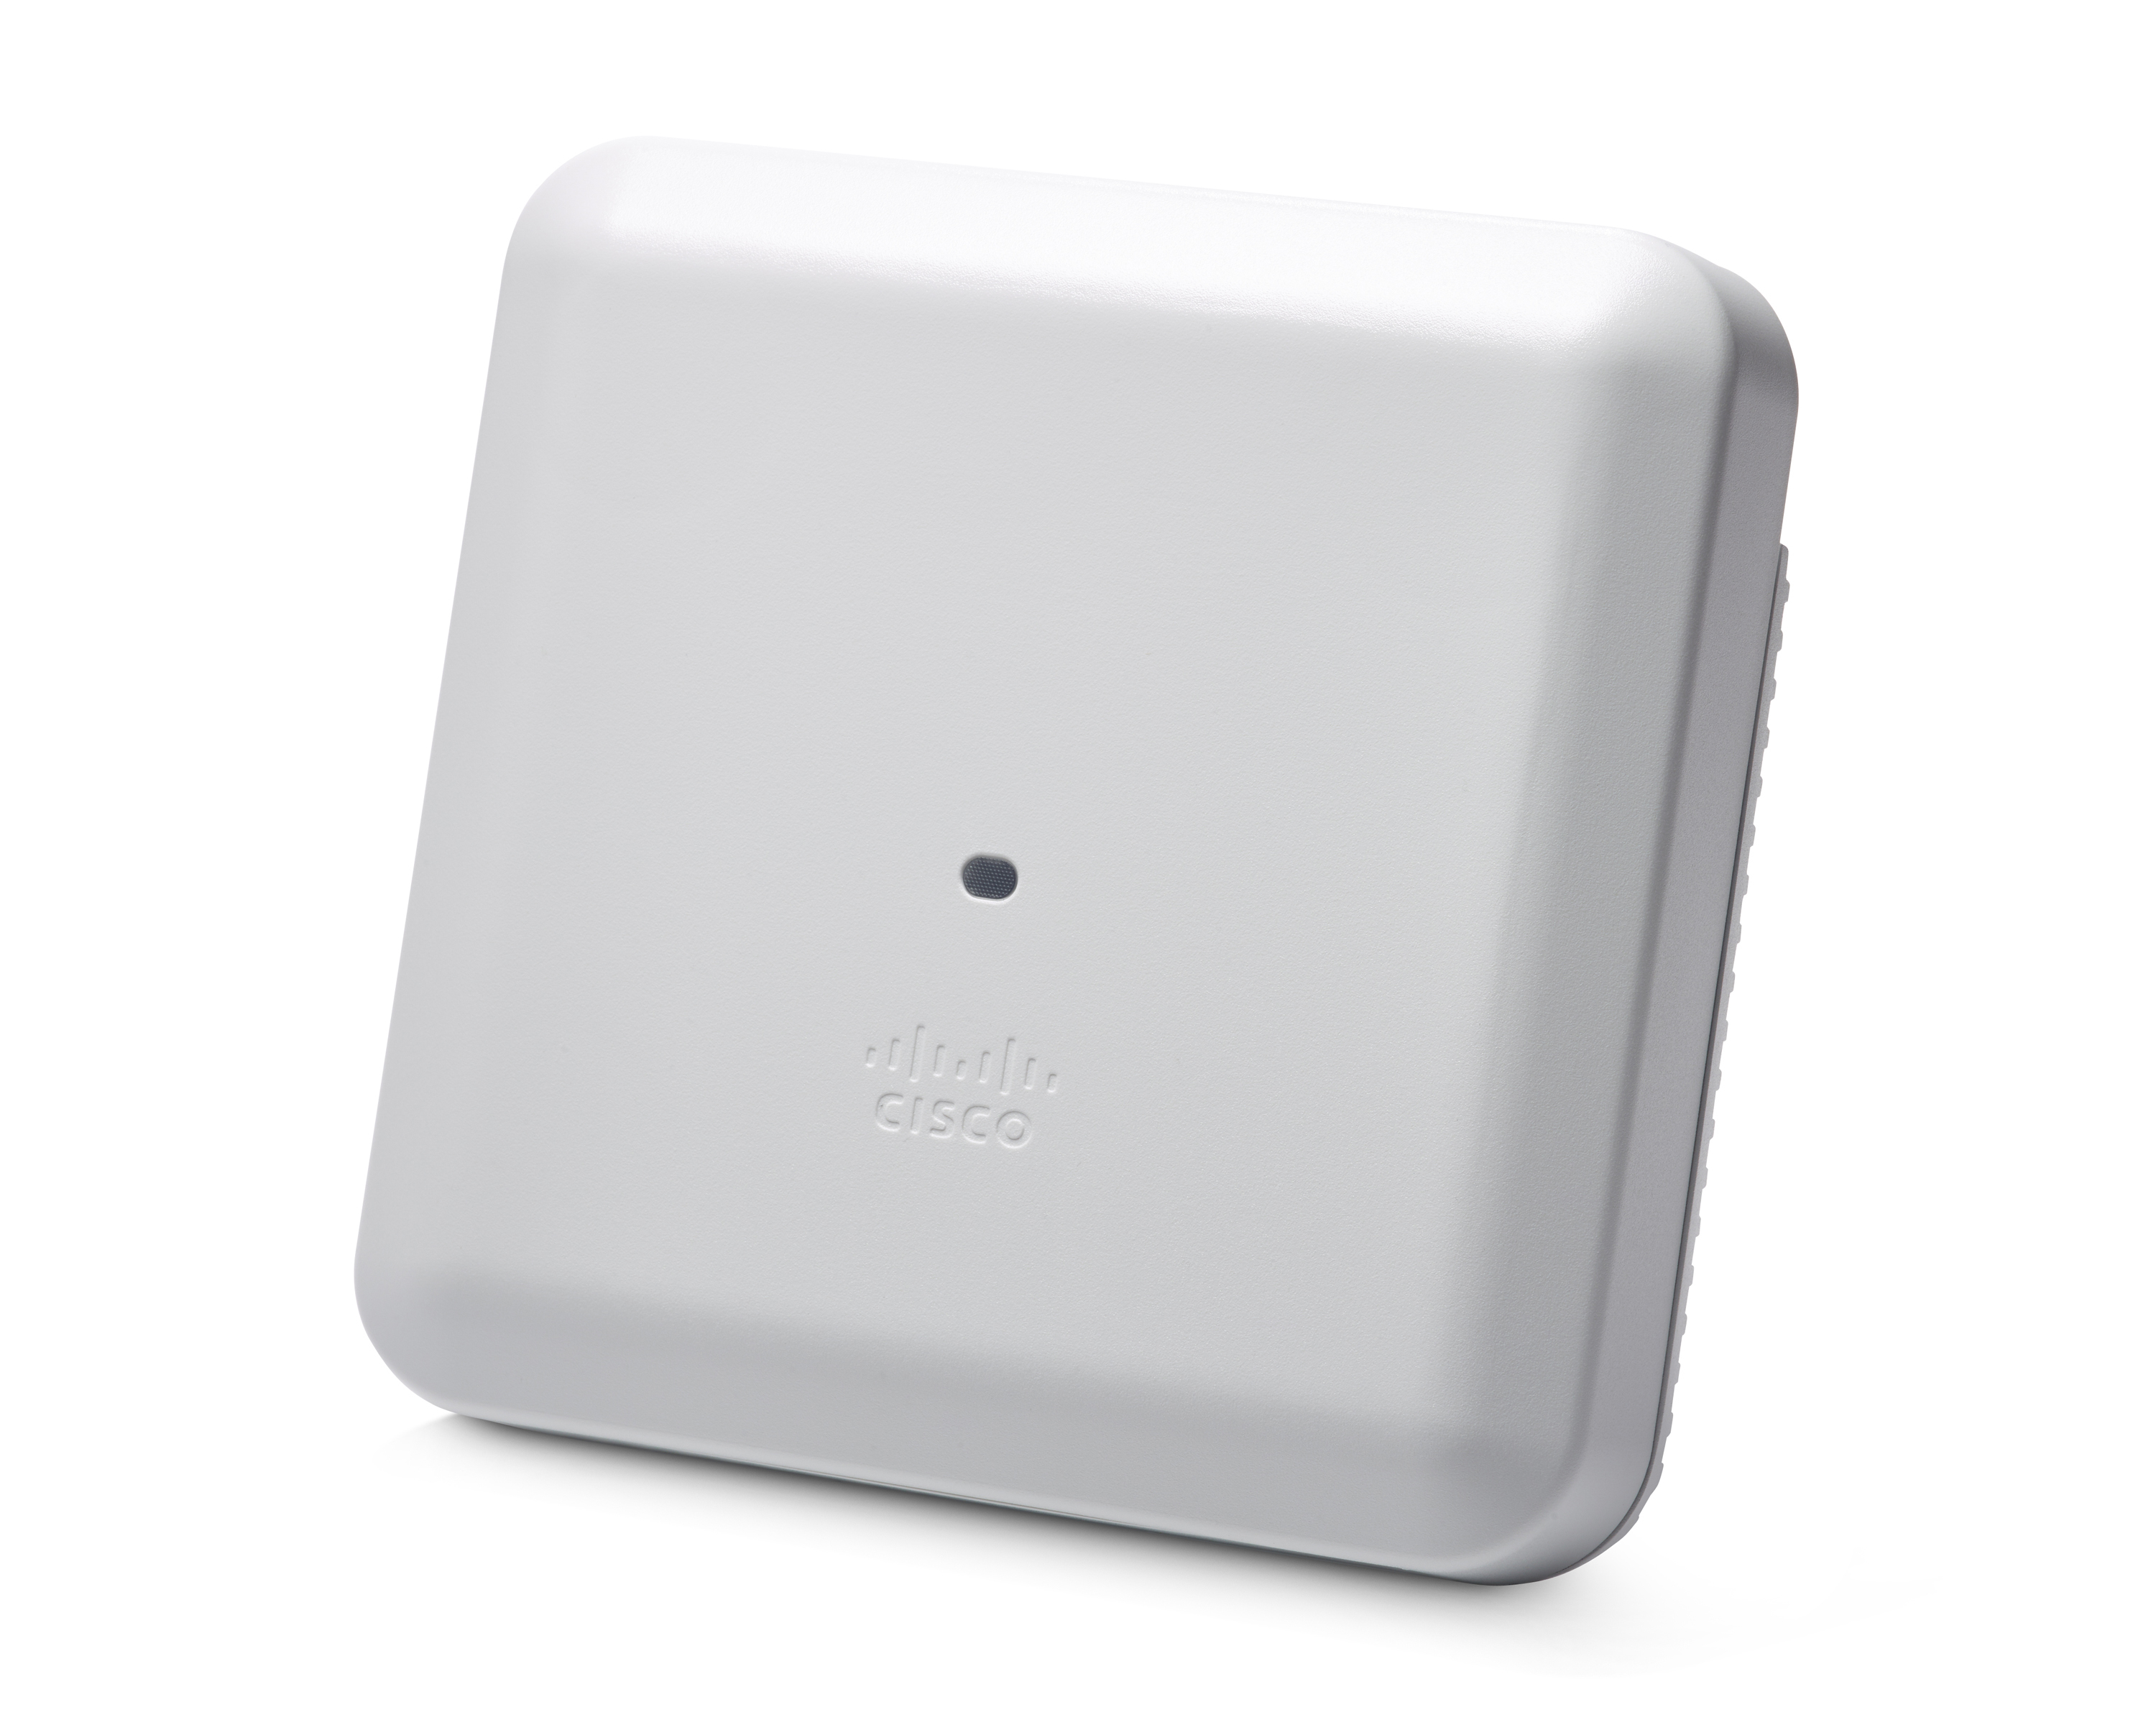 Access Point Cisco Aironet 2800i WiFi: 802.11ac frecventa: 2 4/5GHz - Dual radio cu alimentare PoE